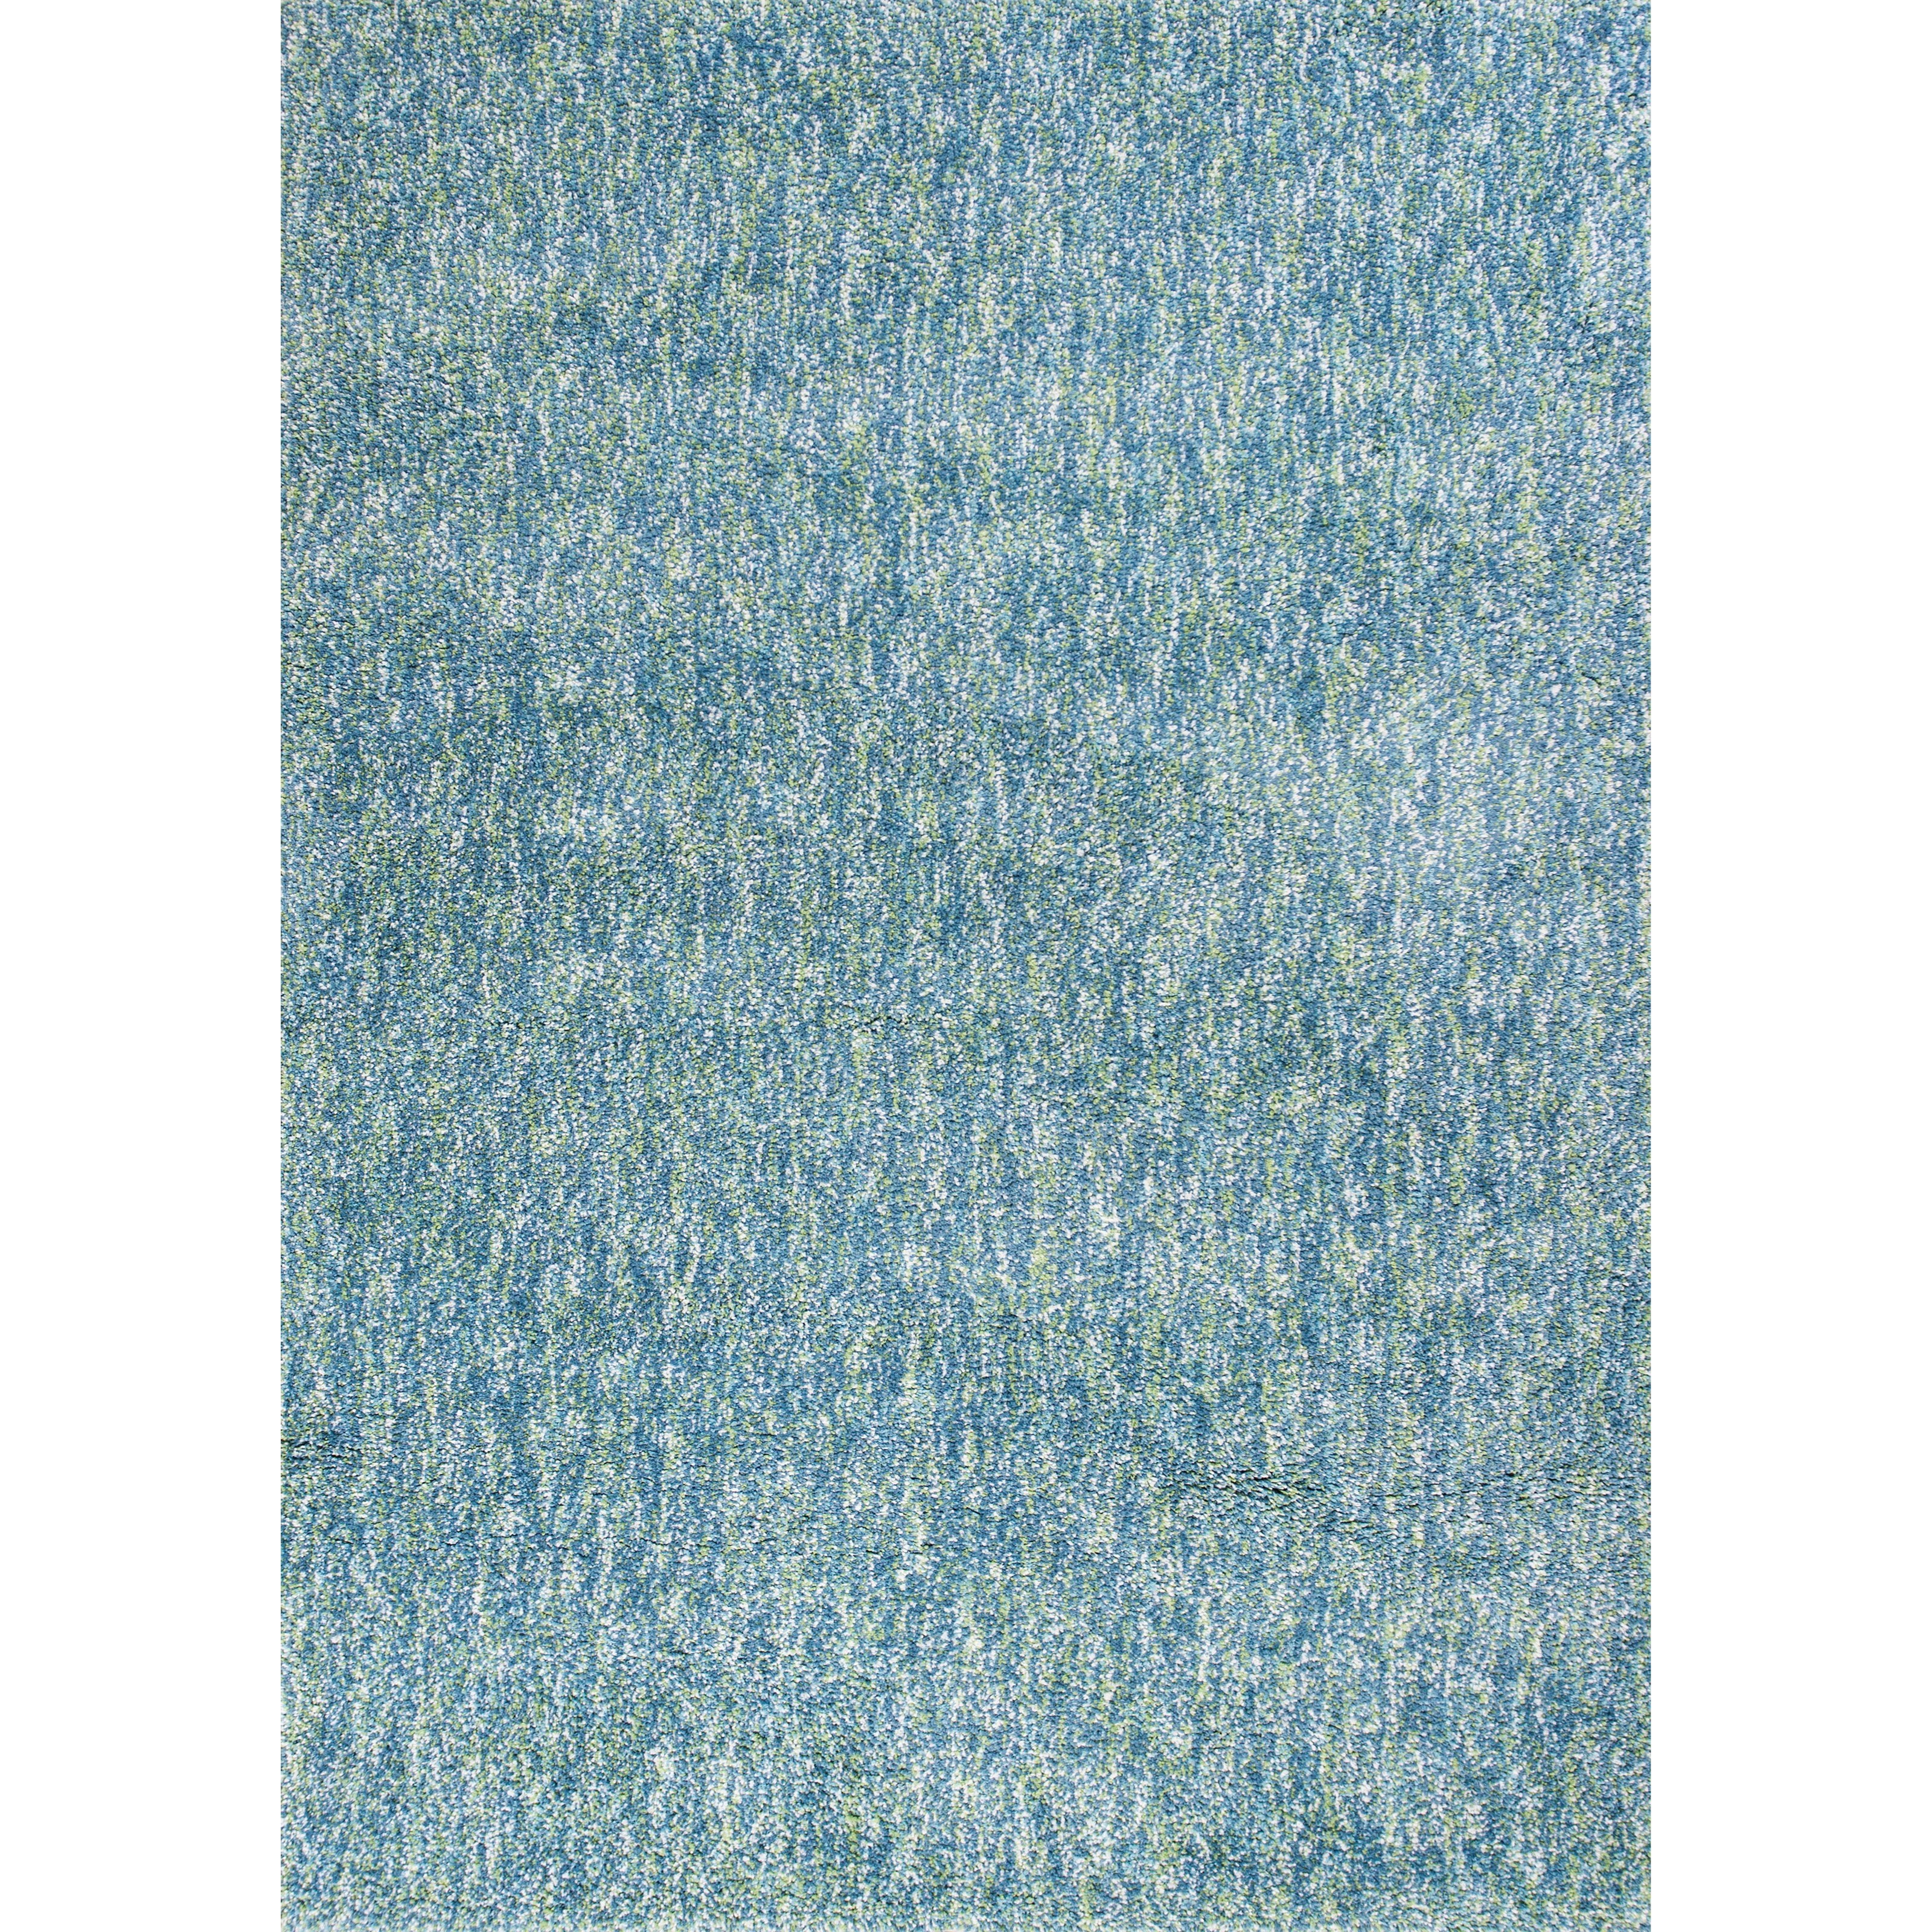 Bliss 6' Round Rug by Kas at Wilson's Furniture